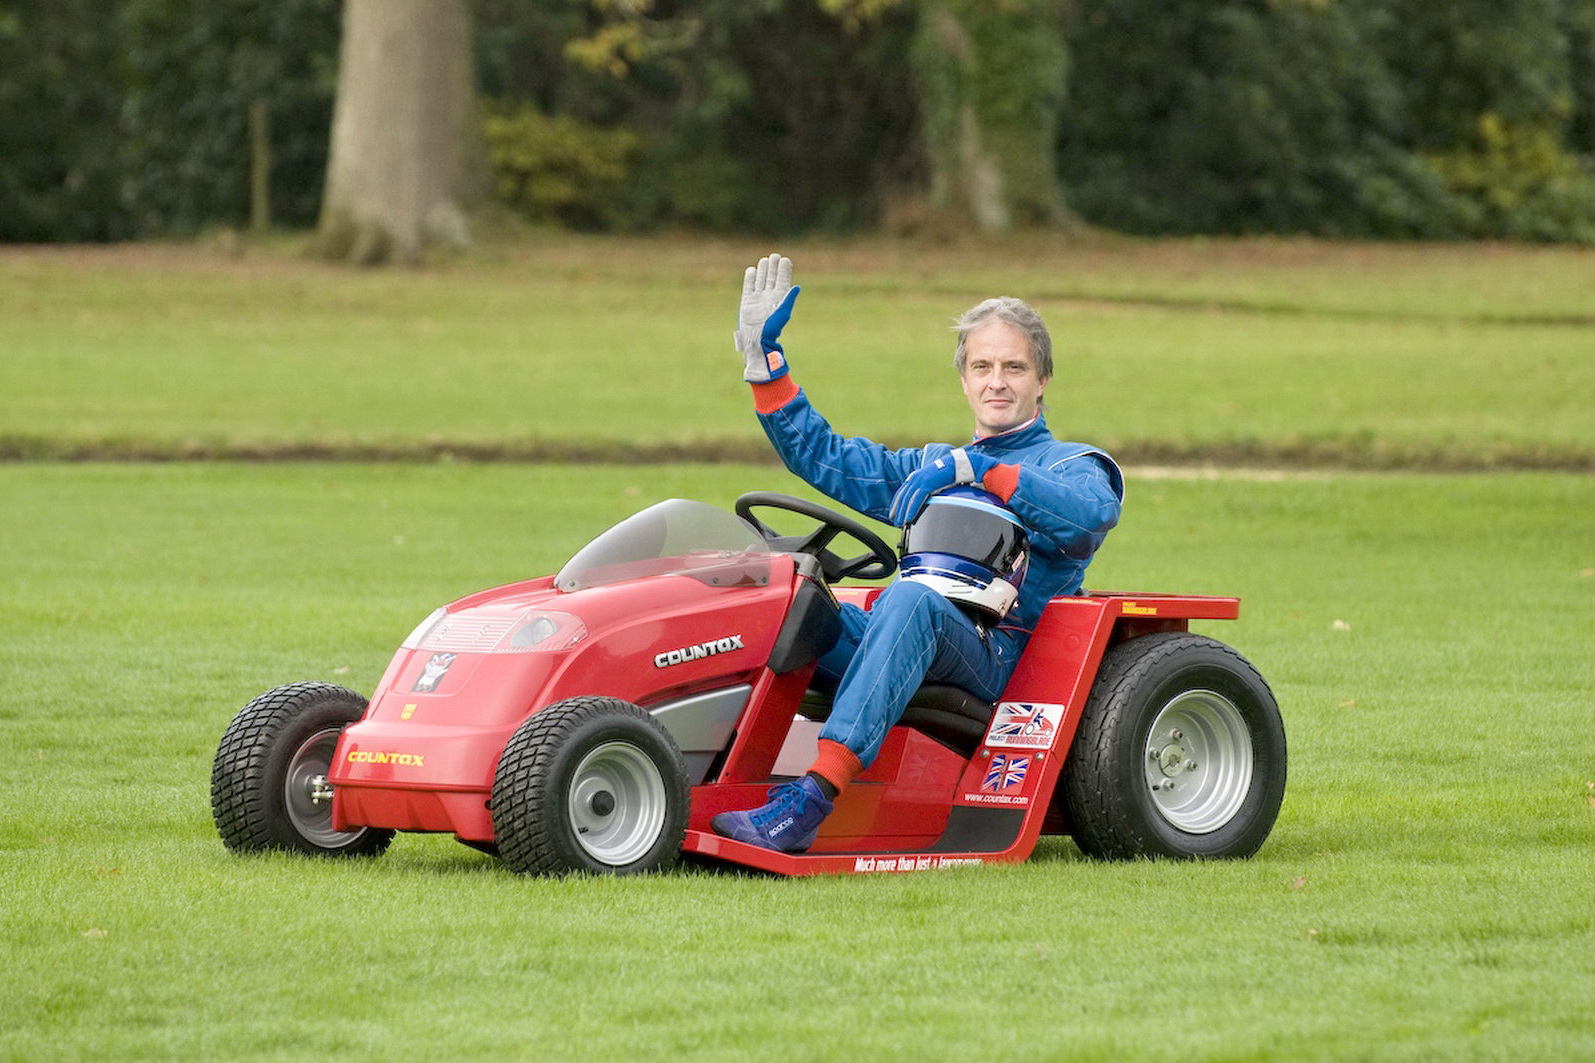 World S Fastest Lawnmower Sets New High Speed Record